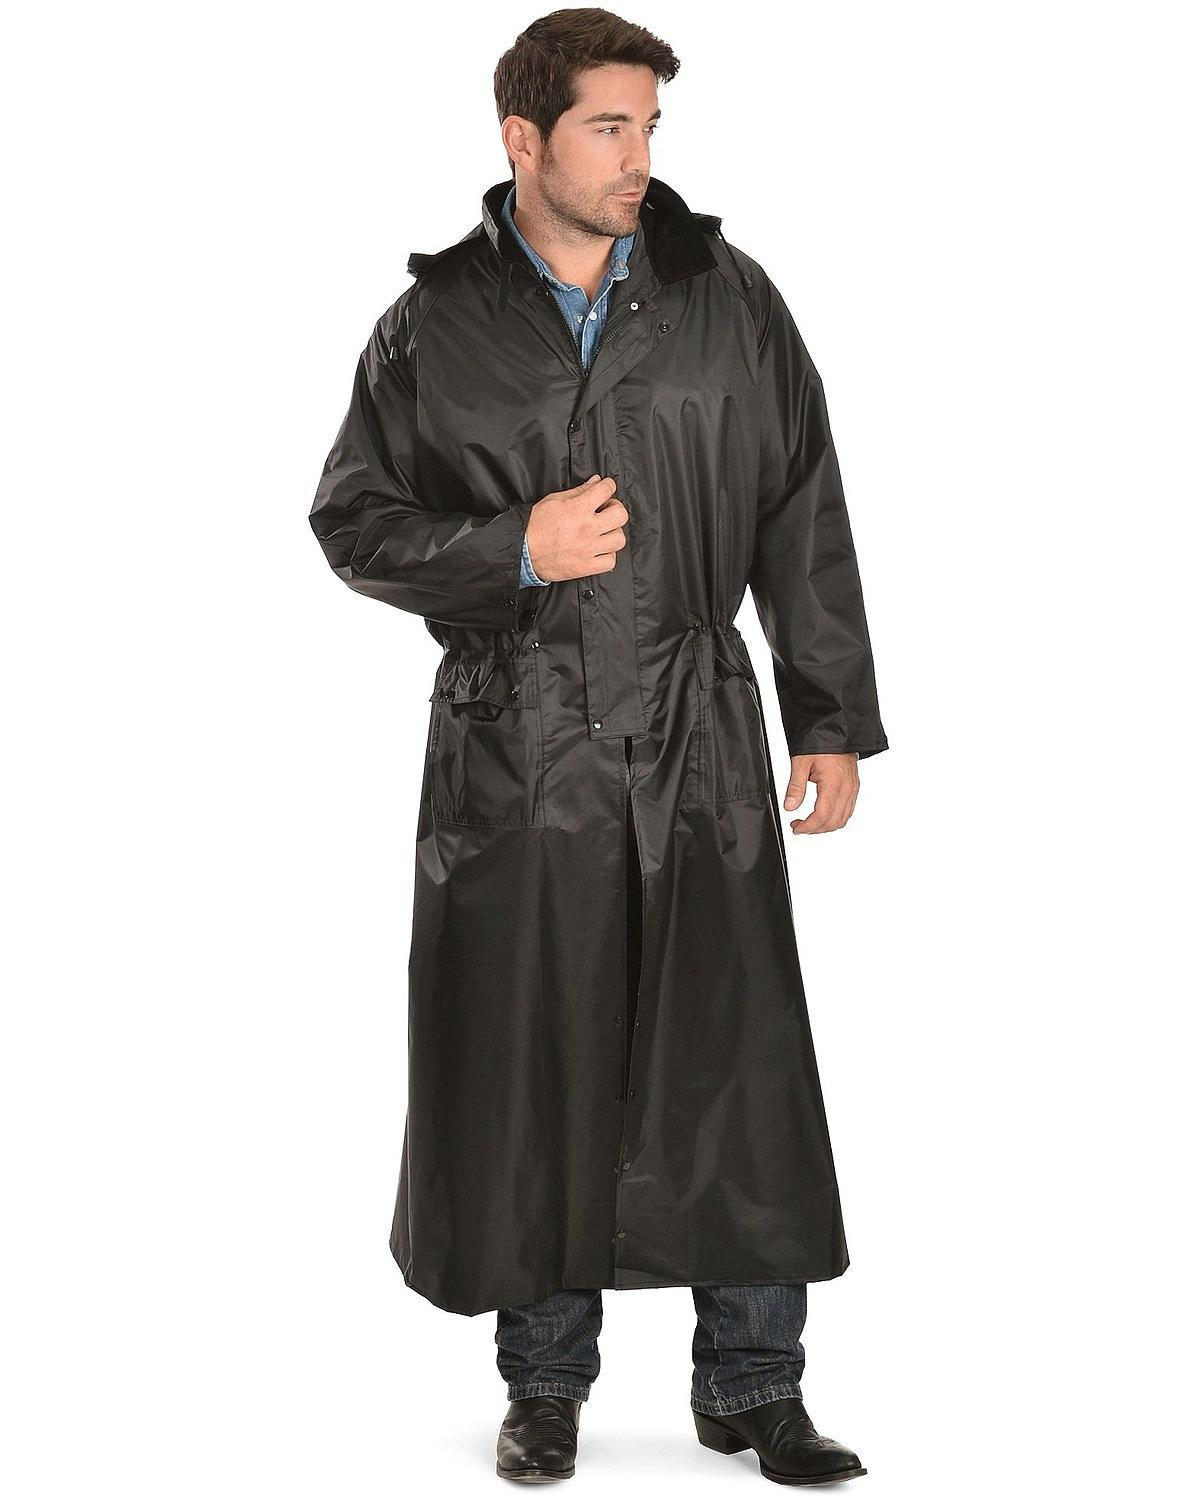 Find great deals on eBay for Mens Rain Slicker in Men's Coats And Jackets. Shop with confidence.